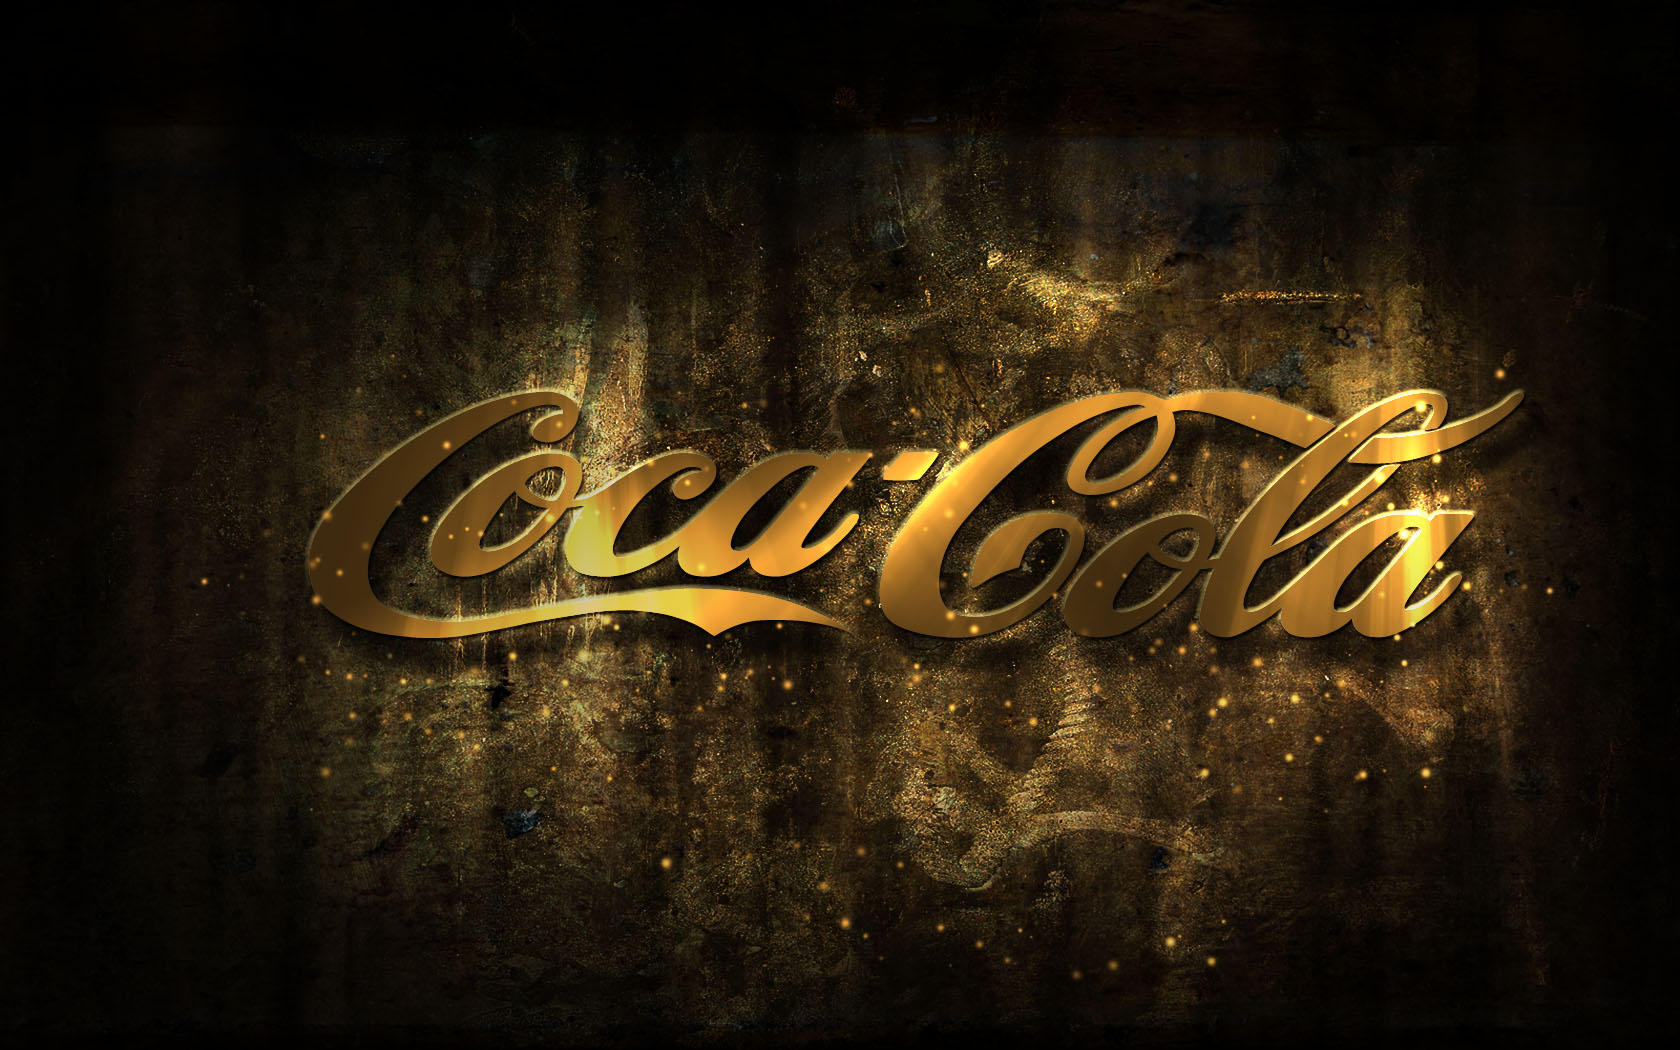 Coca Cola Images Wallpapers | Free | Download